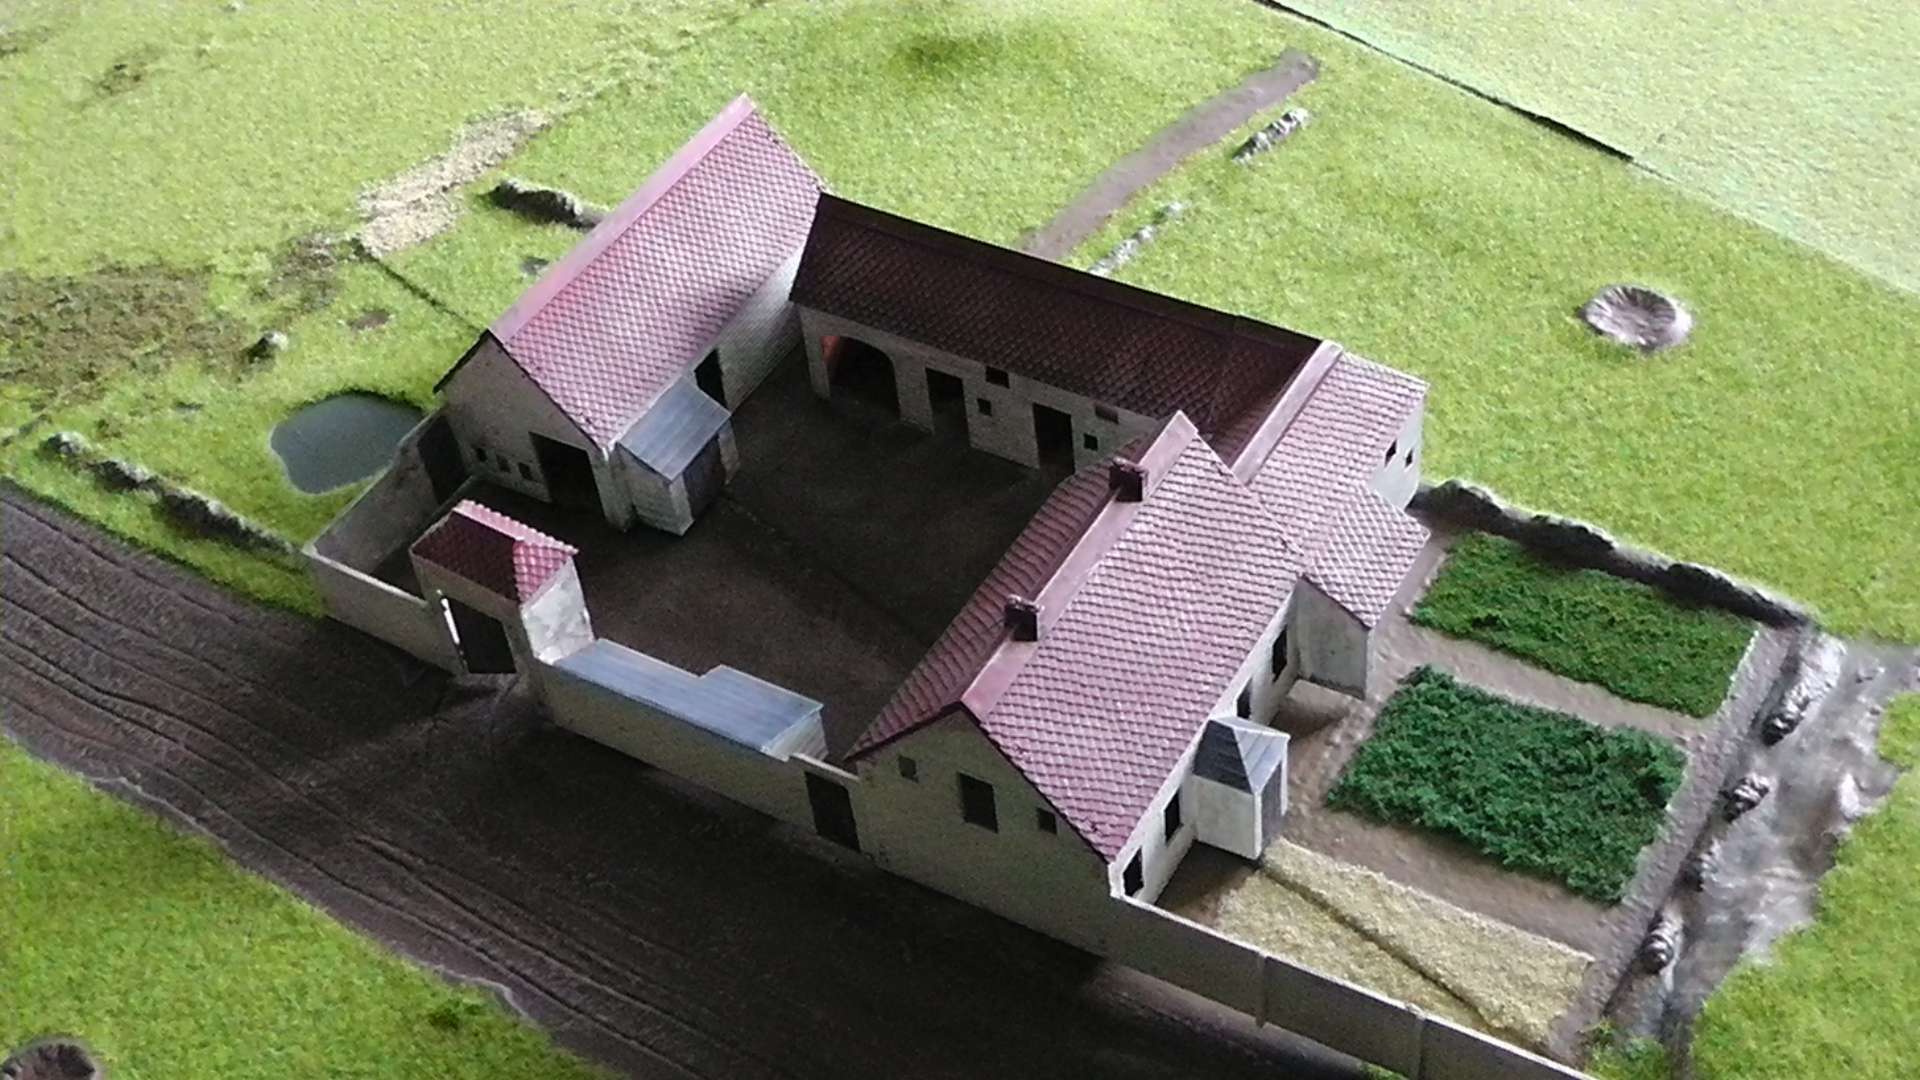 Building And Painting The Airfix 1815 La Haye Sainte